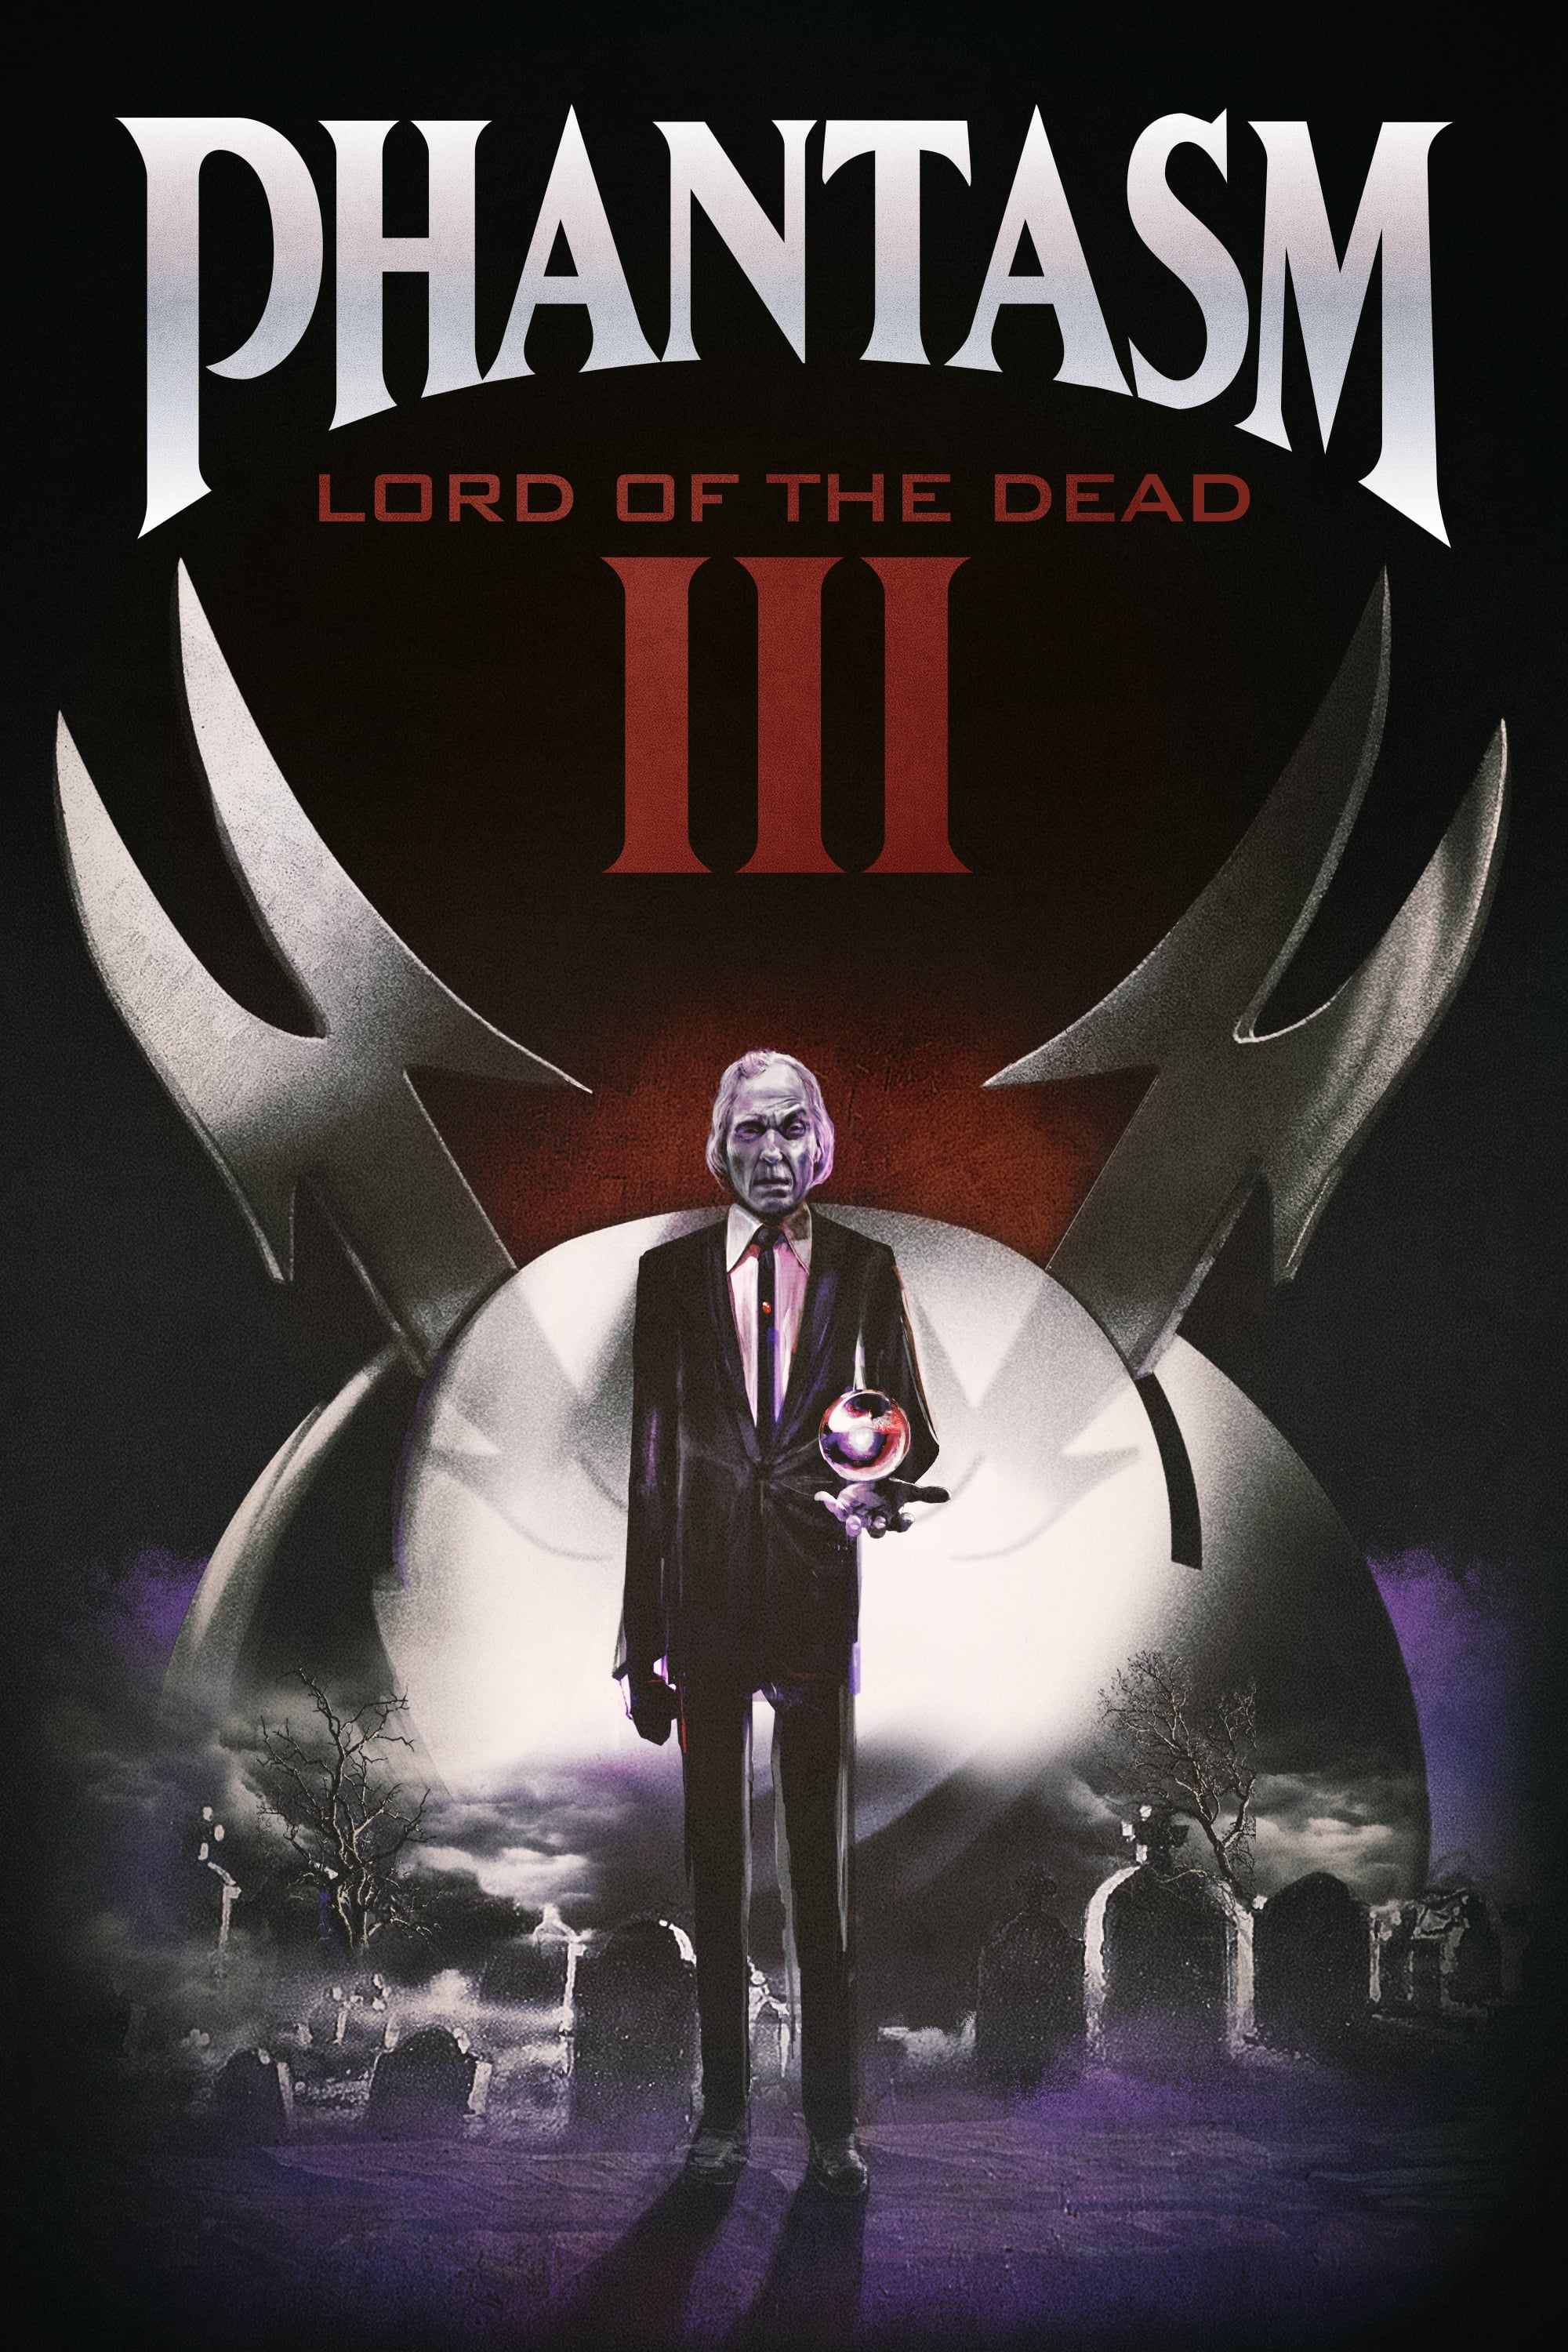 3 Of Swords Rx Reversed As Advice: Phantasm III: Lord Of The Dead (1994)